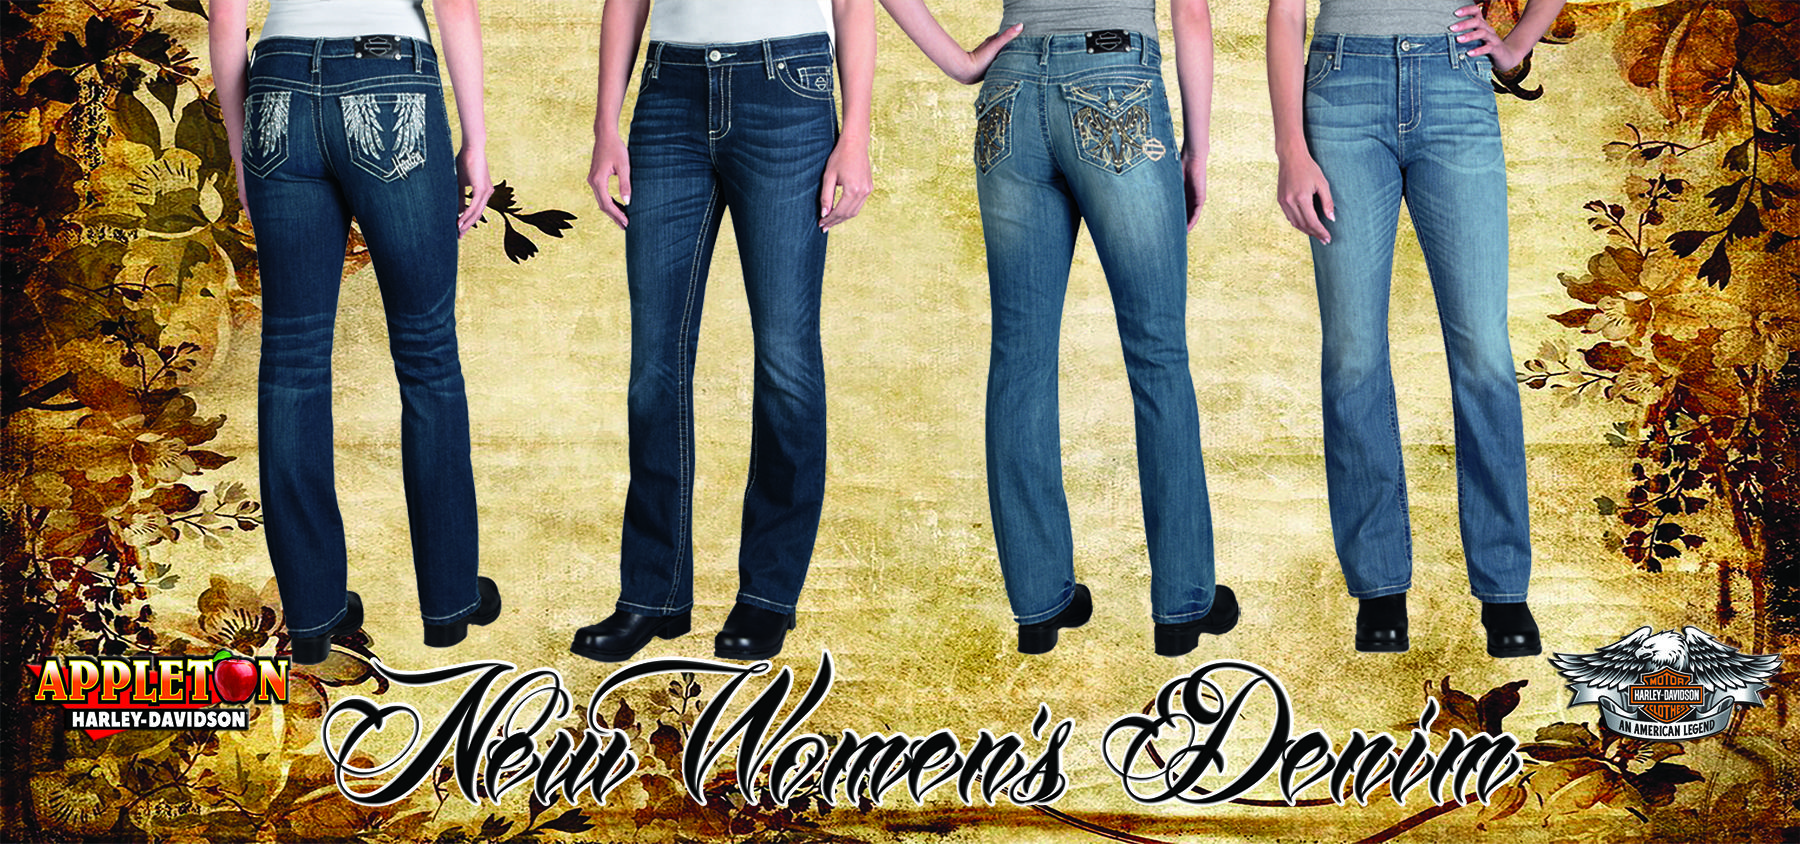 Come Visit The Folks In Motorclothes Harley Davidson Clothing Skinny Jeans Apparel